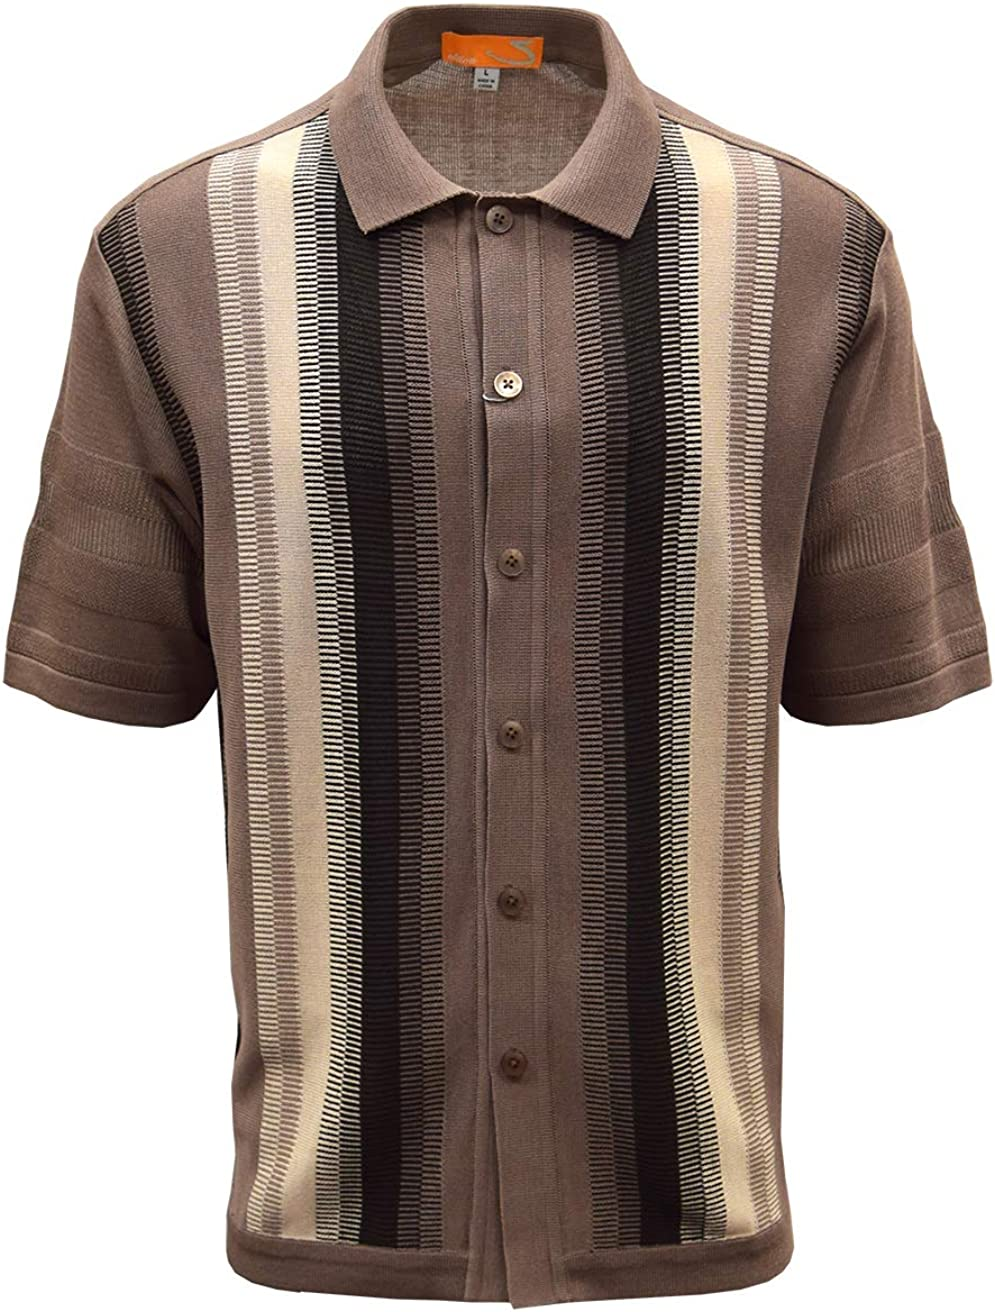 I-N-C Mens Textured Waves Button Up Shirt